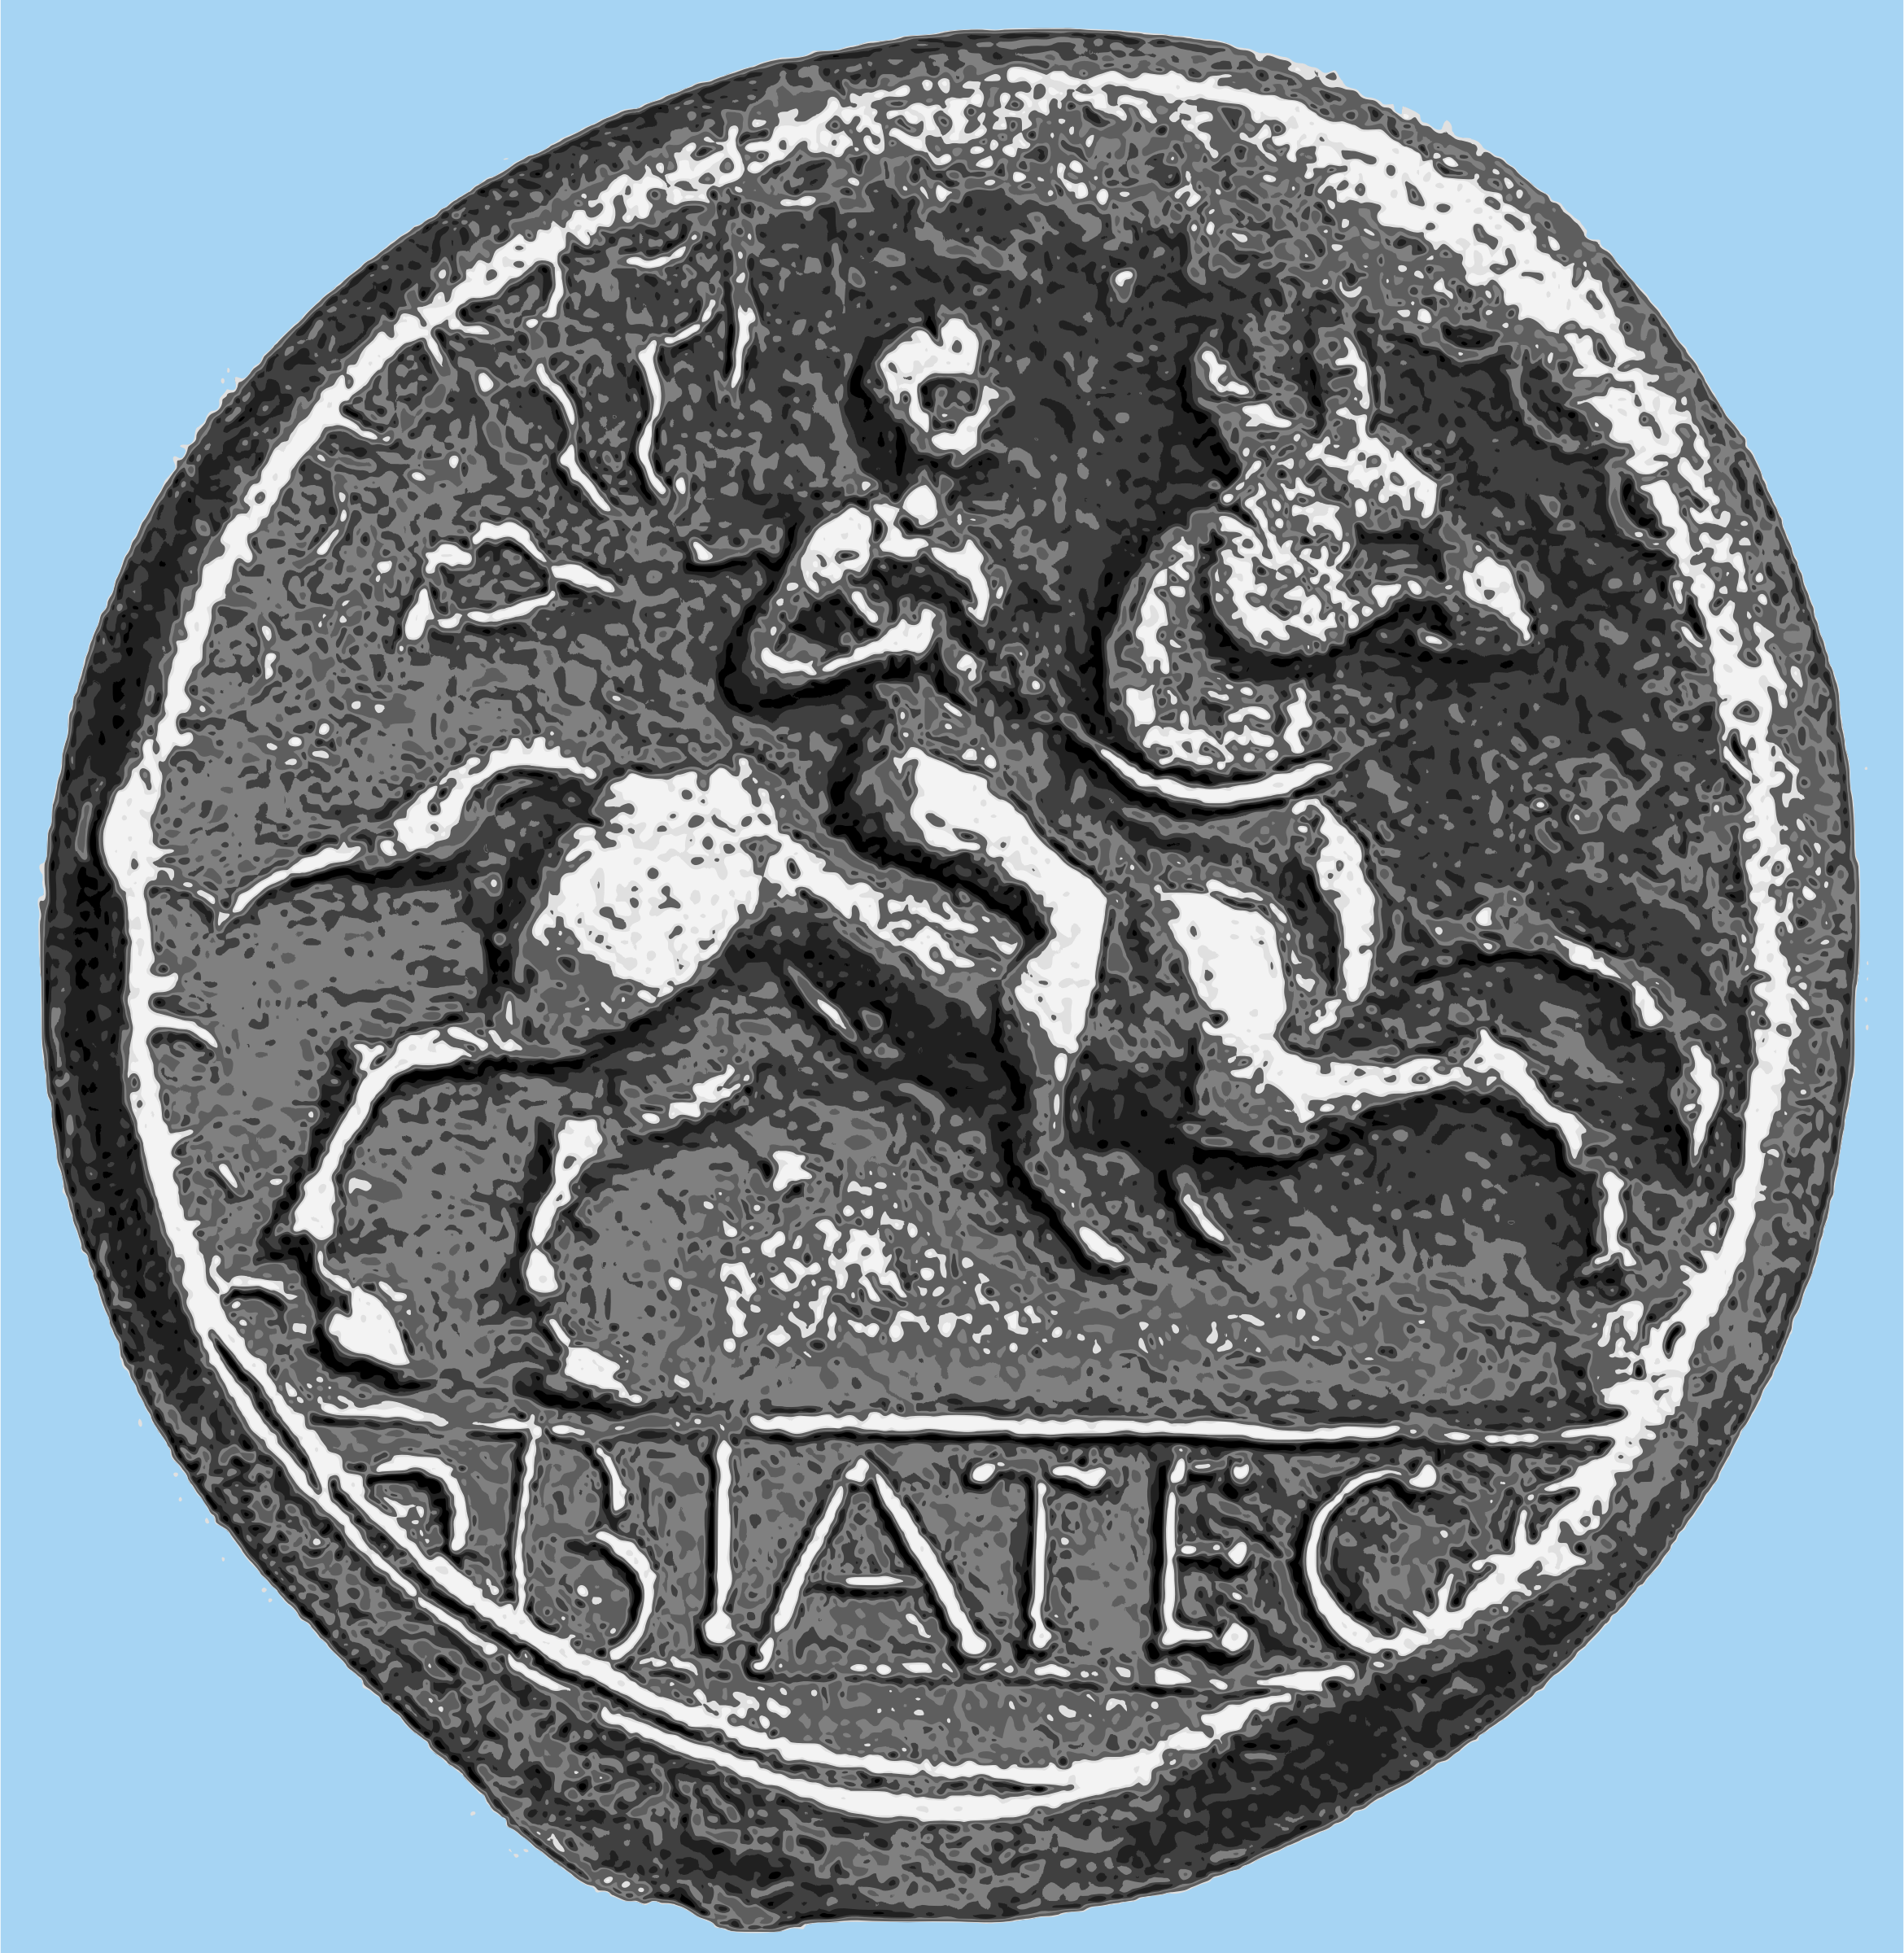 The Biatec Celtic coin by AdamStanislav